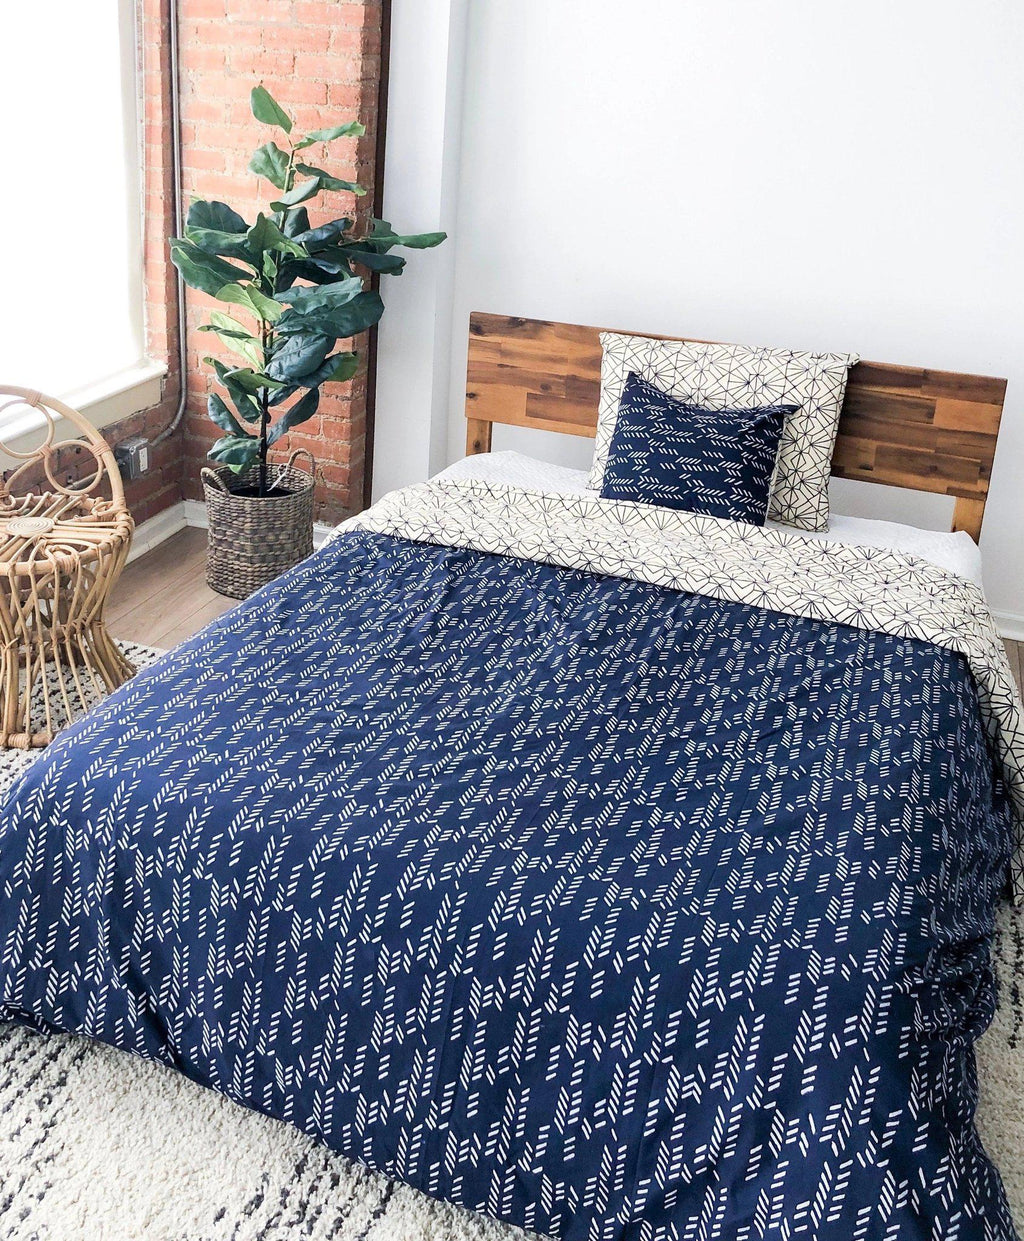 Art Deco/Stylized Feather Bedding Set in Navy & Cream